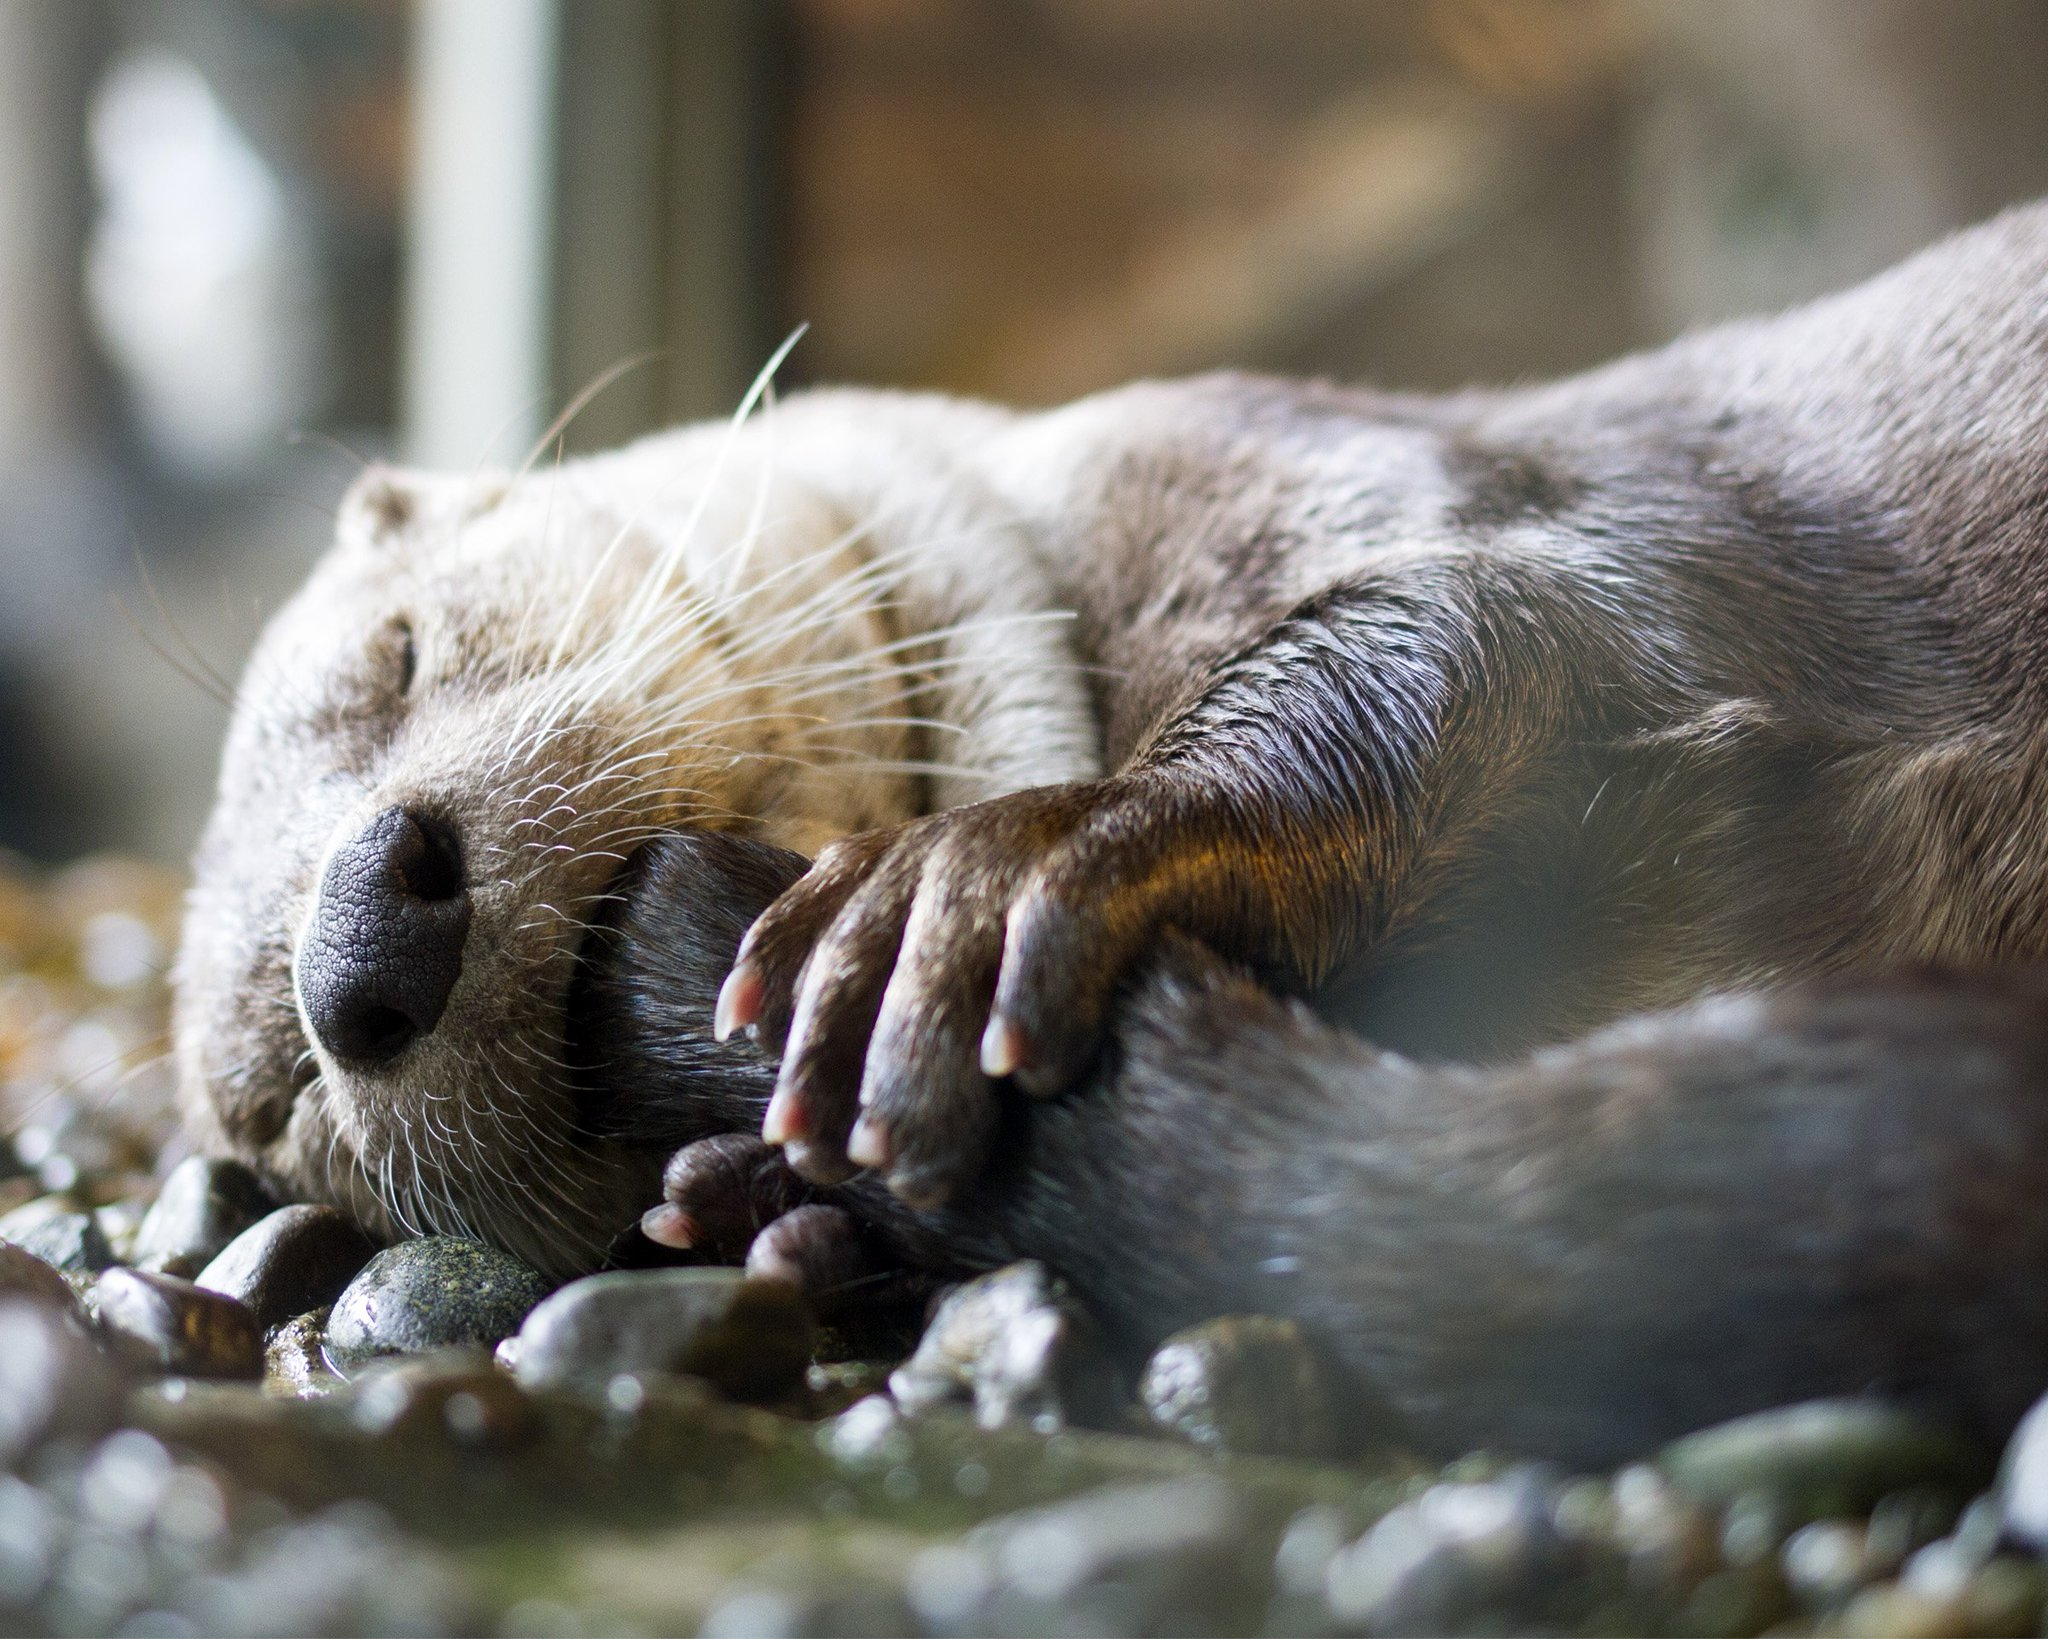 Our river #otters don't want to be left out of the #CuteAnimalTweetOff! https://t.co/9WfXmsEtCt